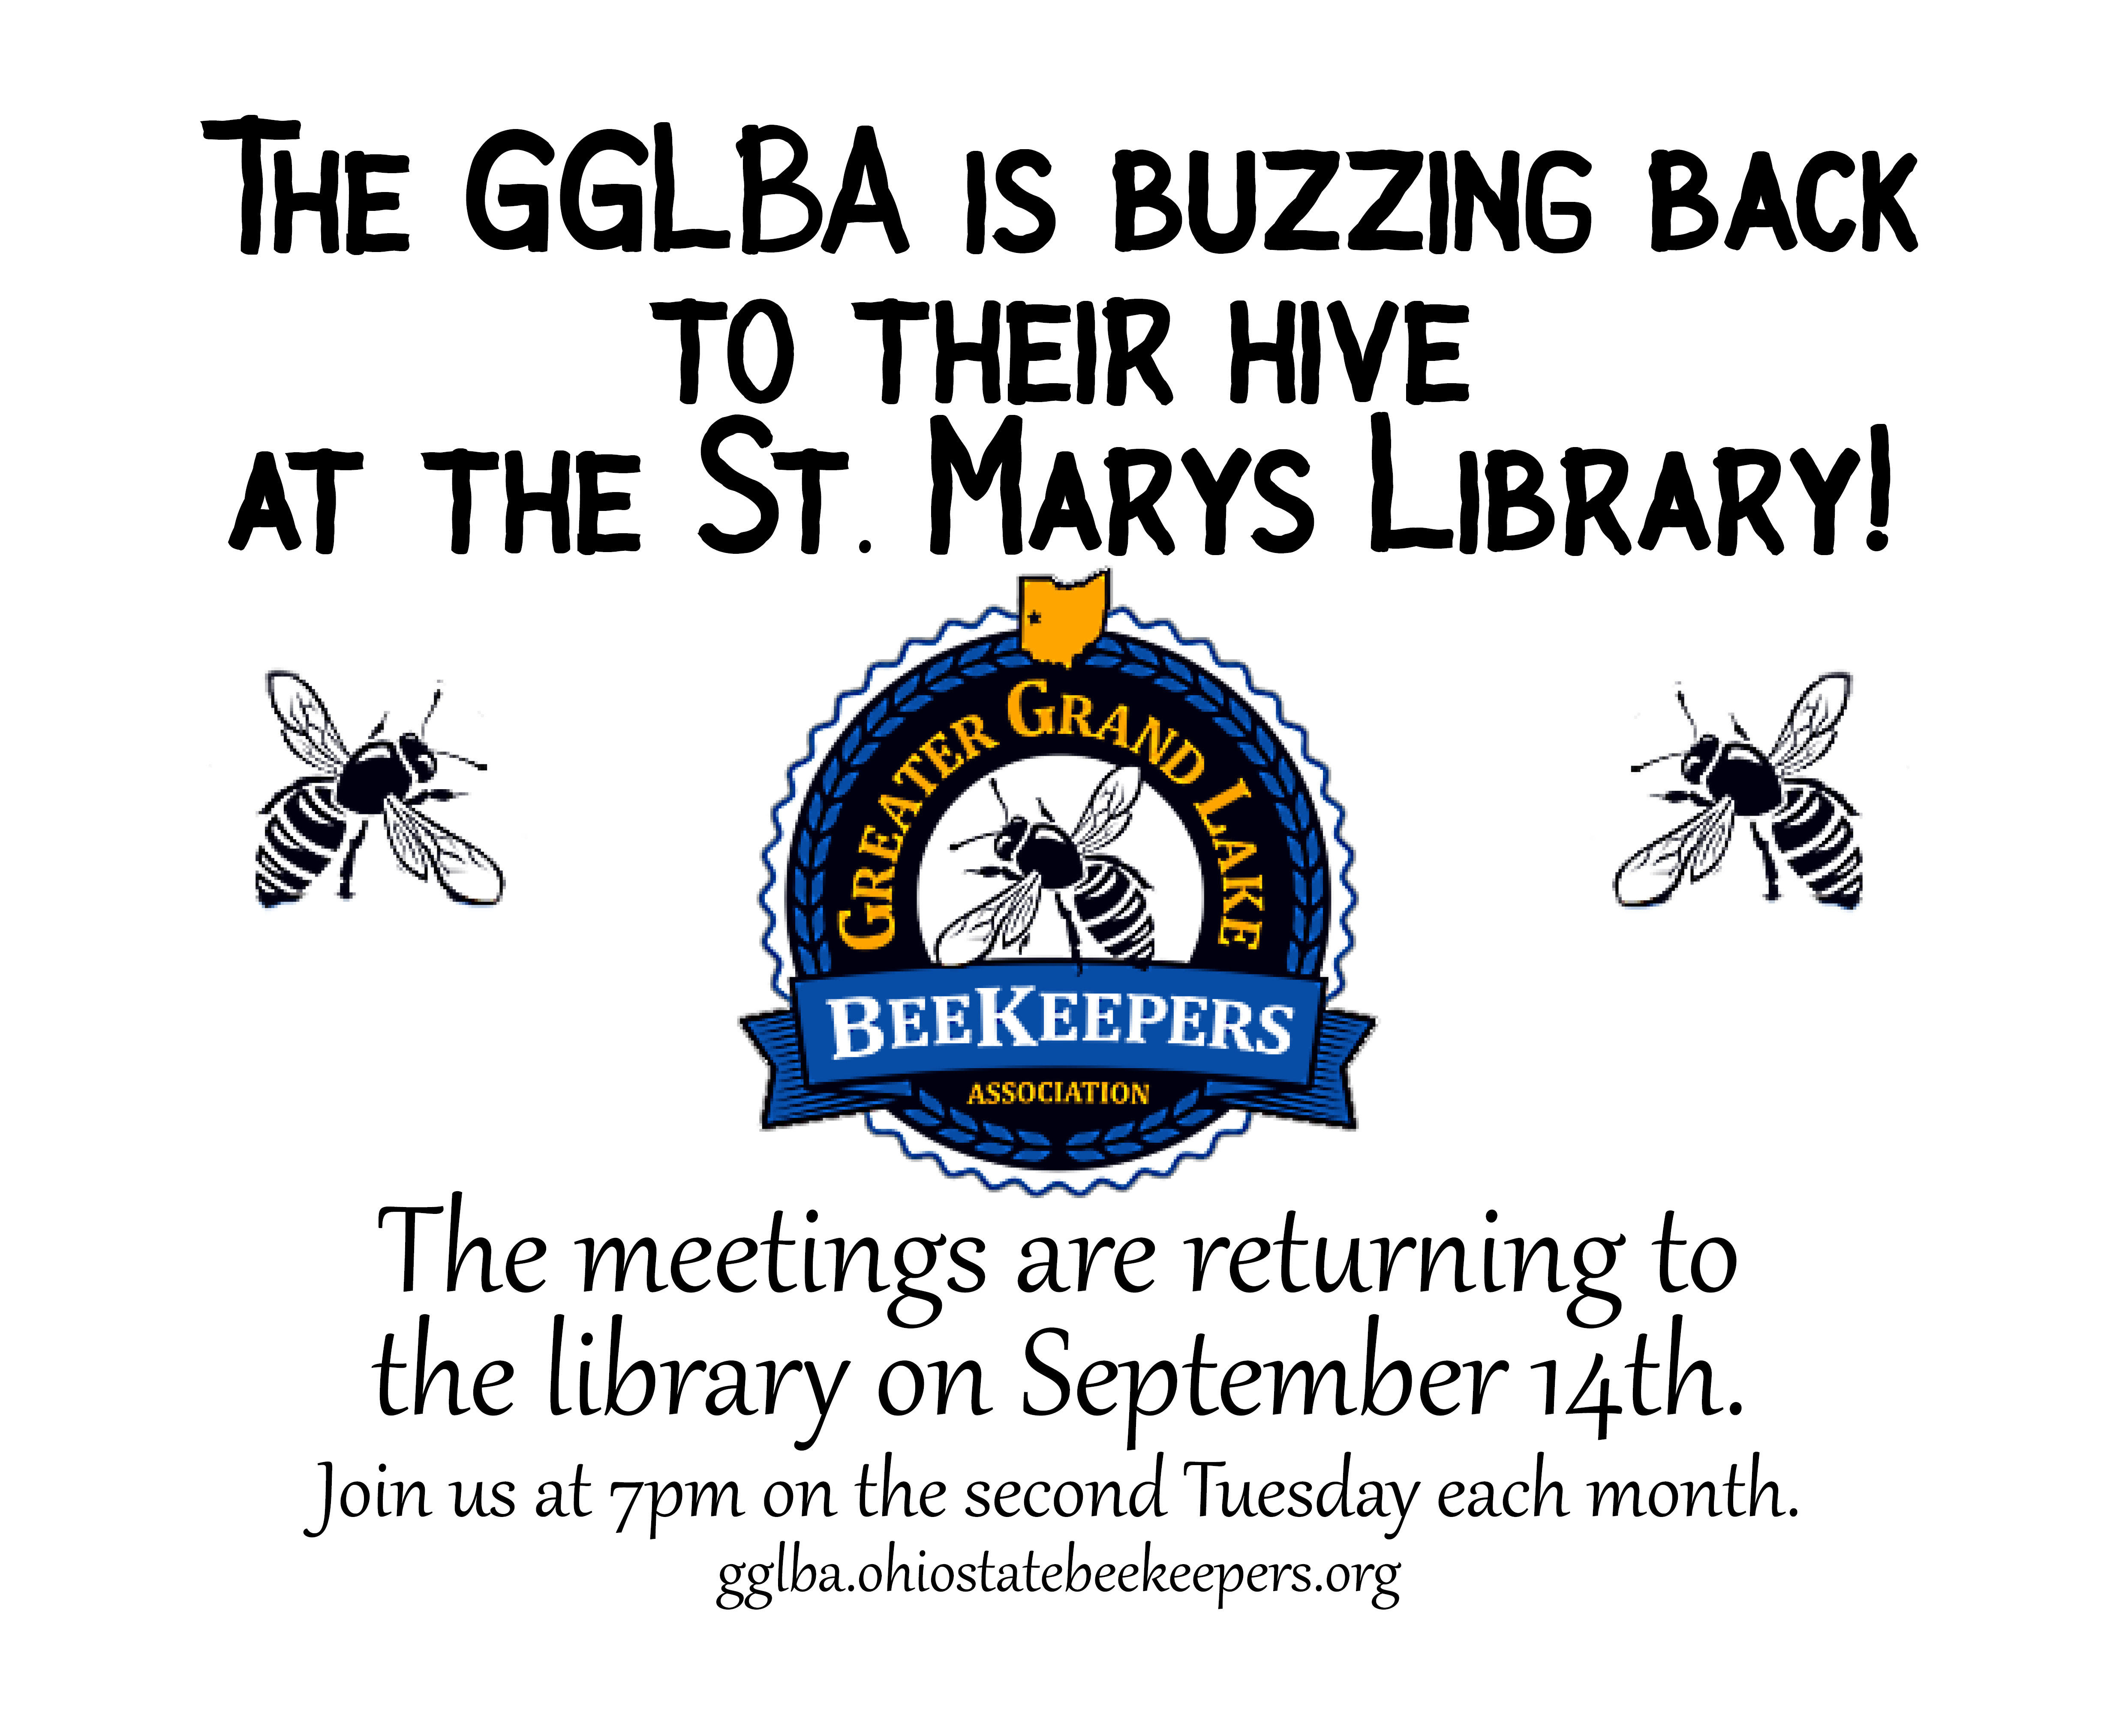 GGLBA IS RETURNING TO THE ST. MARYS PUBLIC LIBRARY FOR THE MONTHLY MEETING SEPTEMBER 14TH 7PM-9PM